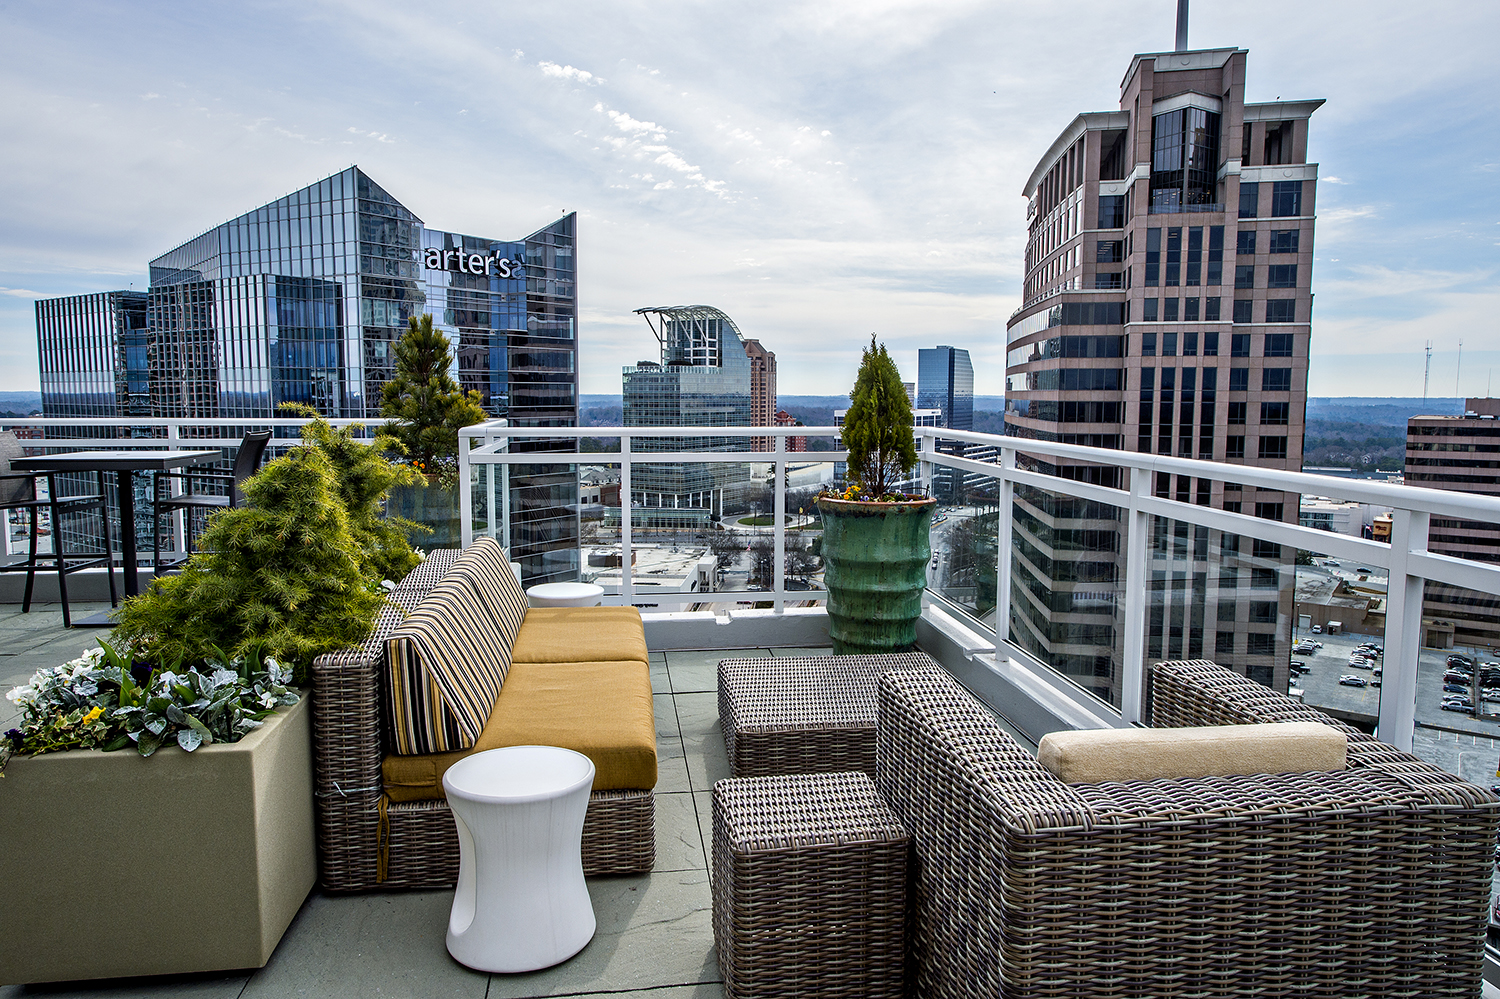 28 Photos: Buckhead\'s Latest Millennial Shangri-La - Curbed Atlanta